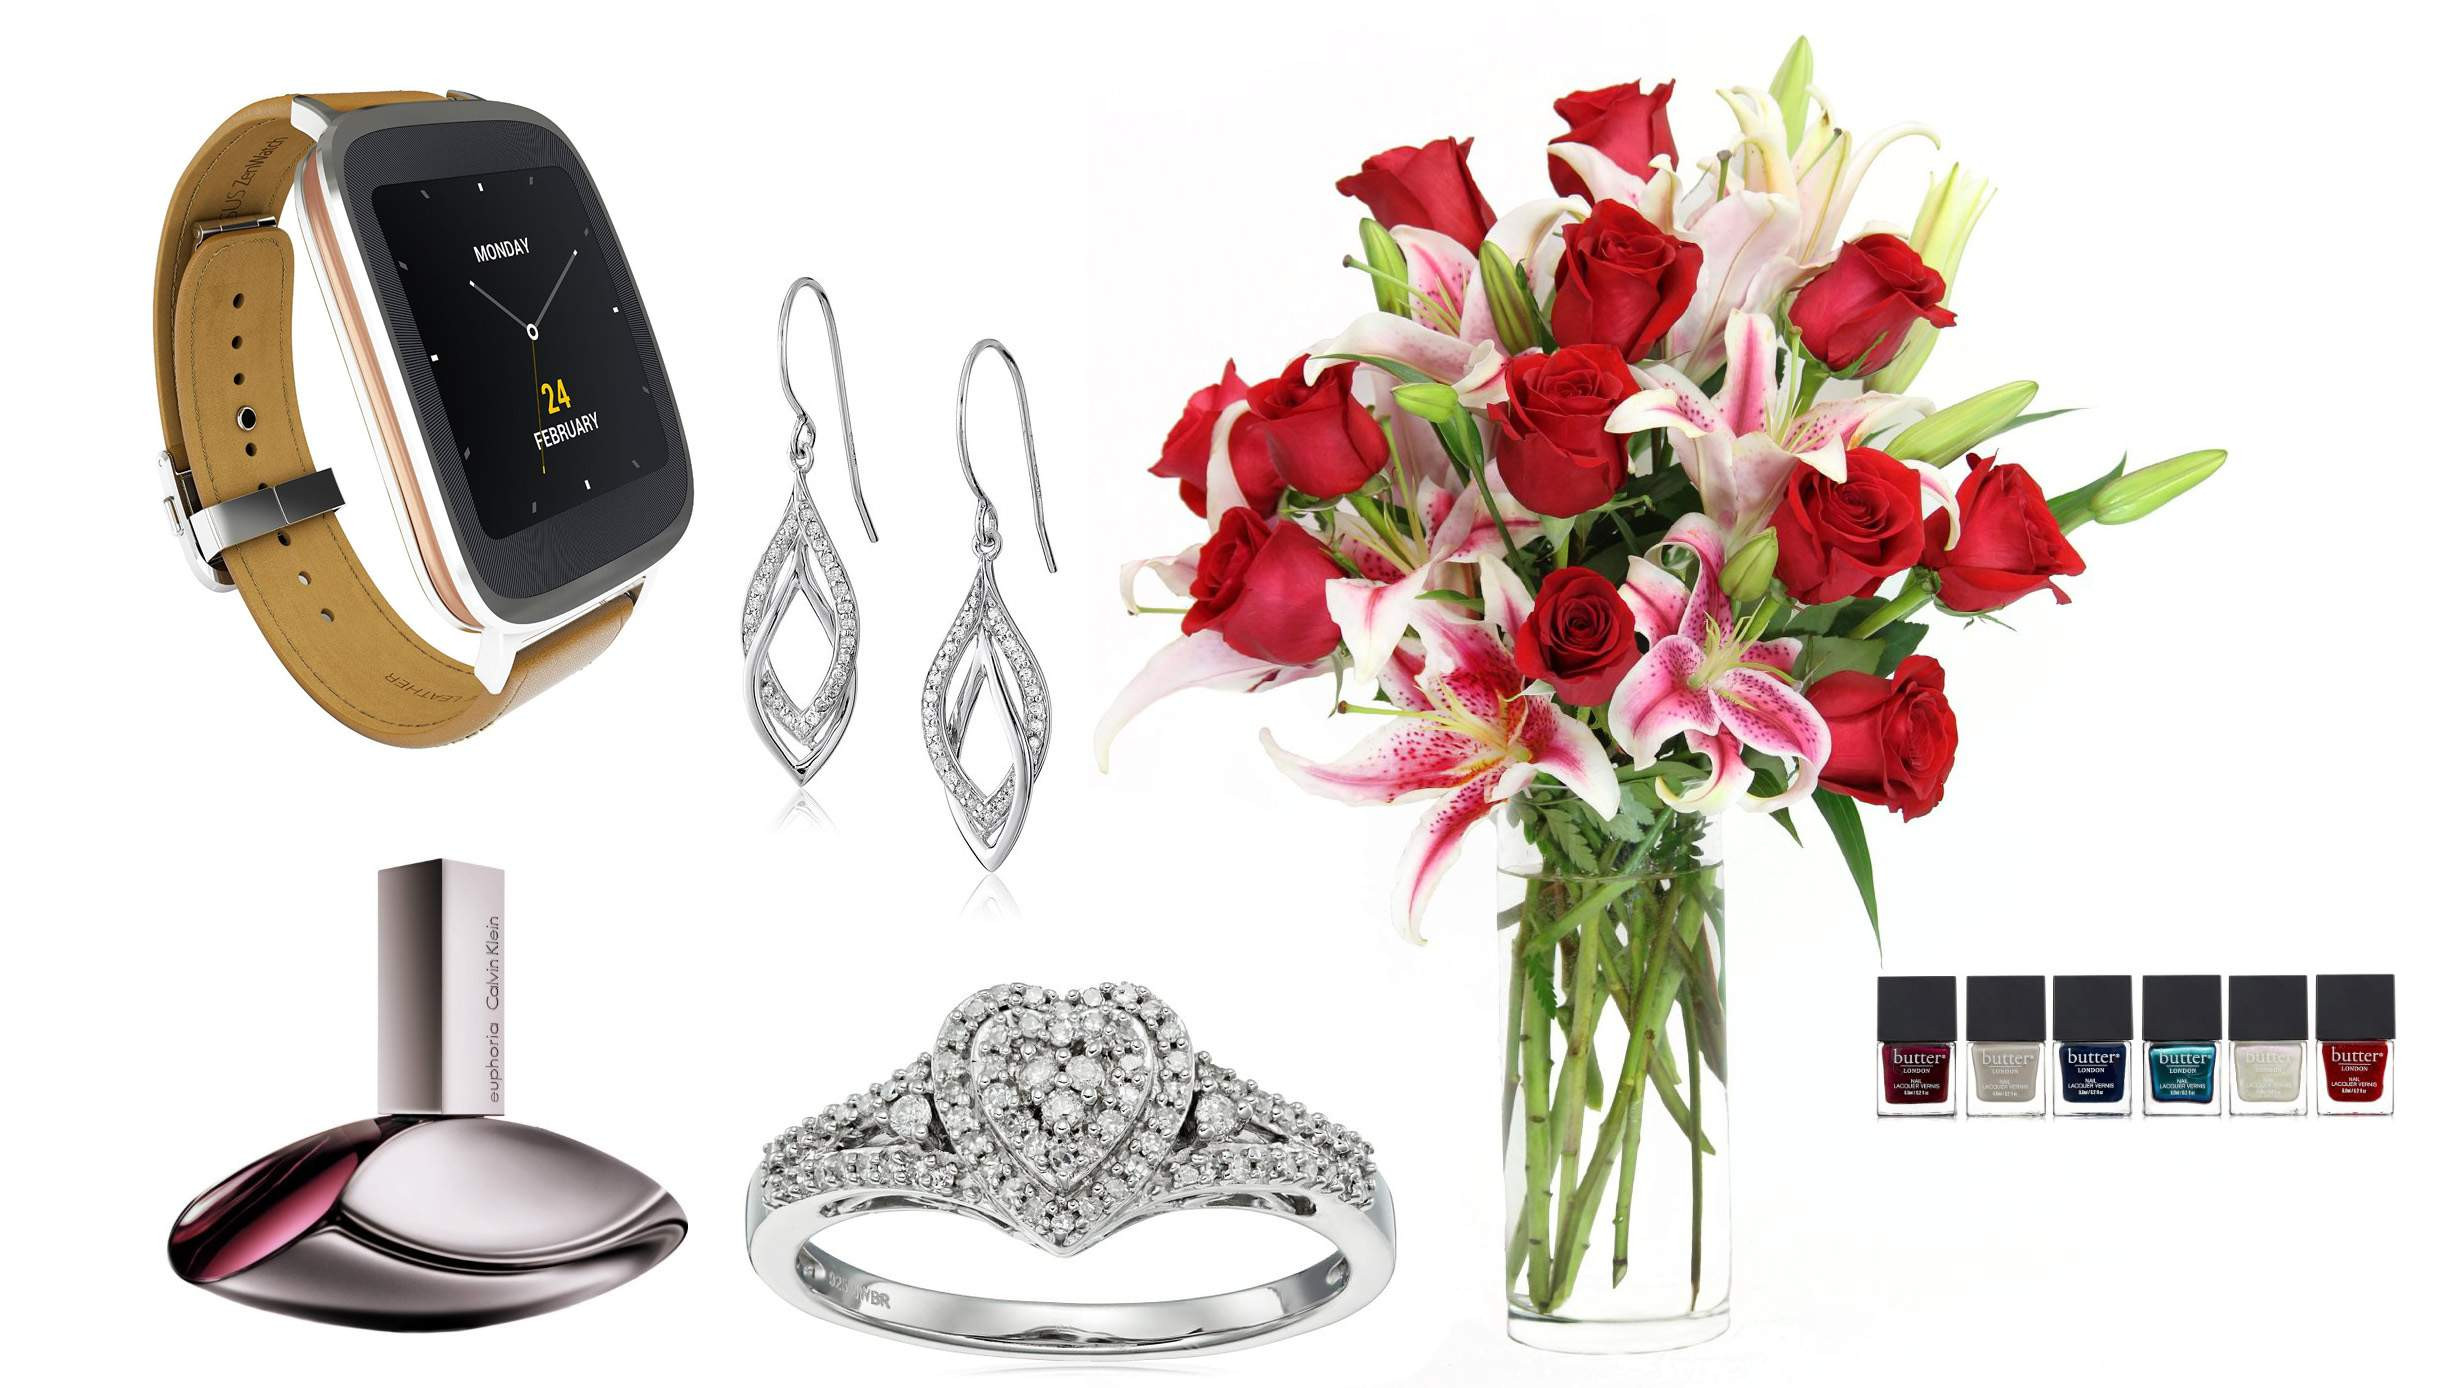 Valentines Gift Ideas For Women  Top 20 Best Valentine's Day Gifts for Women